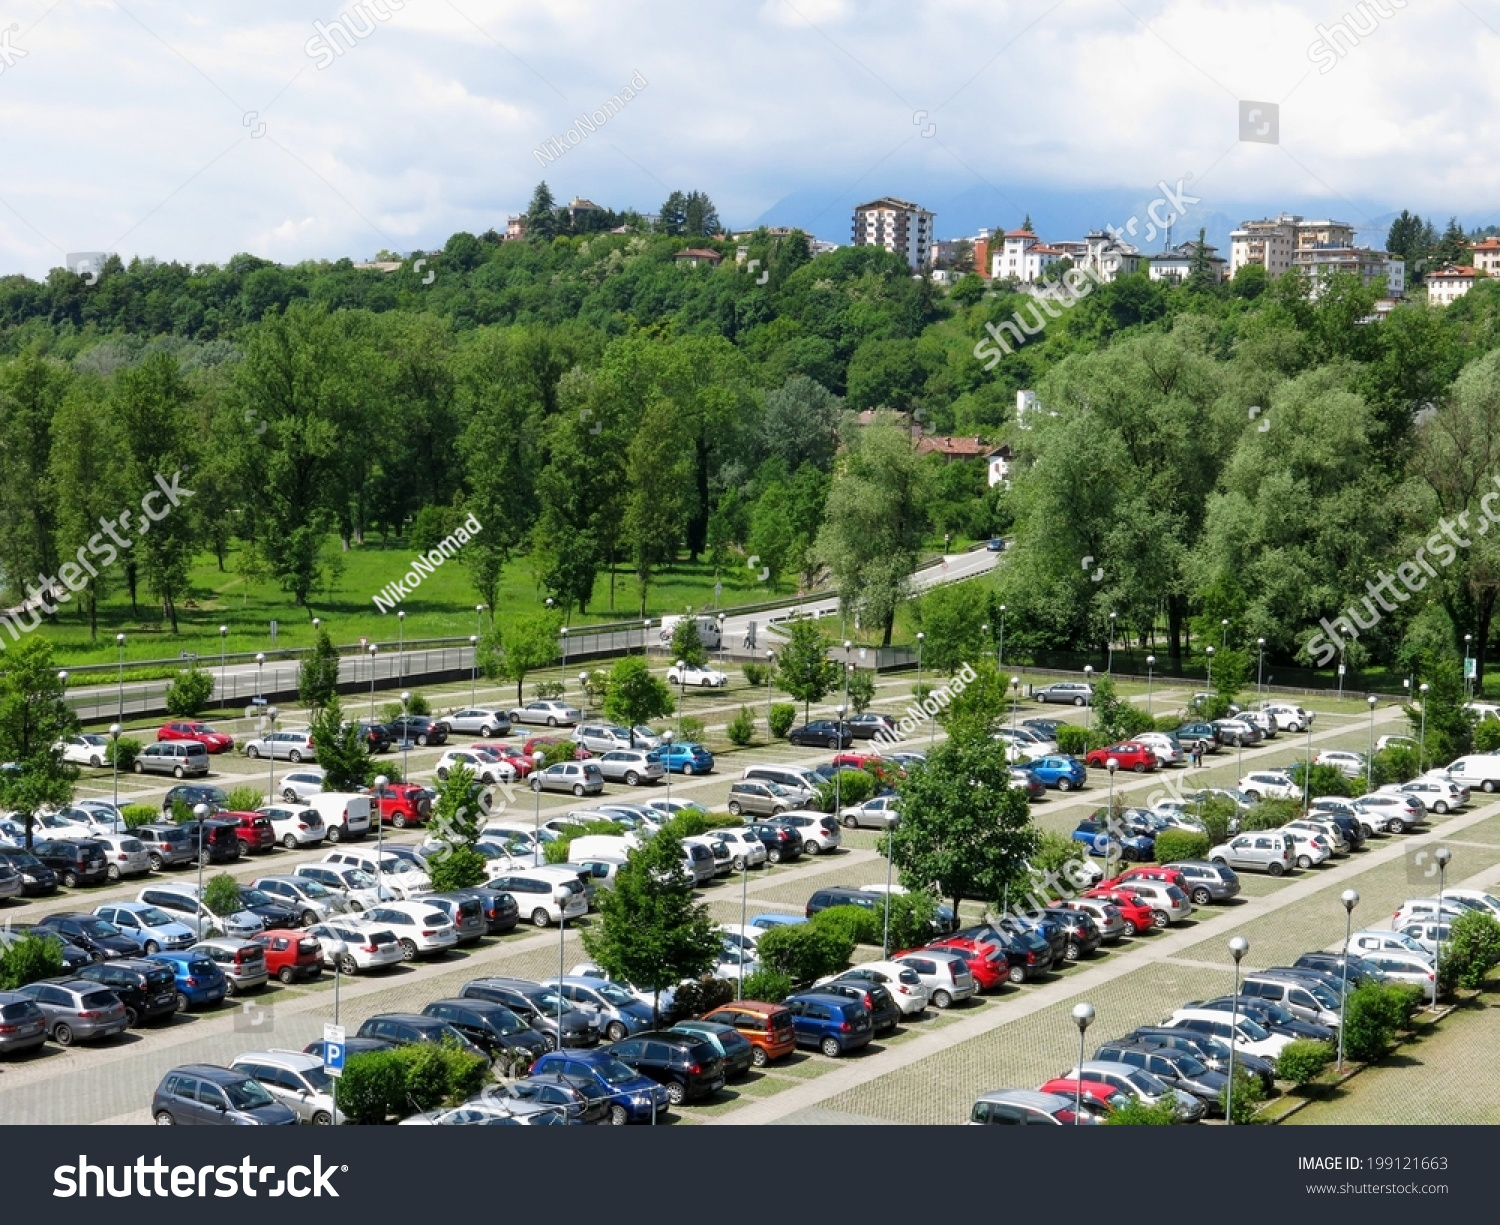 aerial parking outdoors vehicles green park stock photo. Black Bedroom Furniture Sets. Home Design Ideas